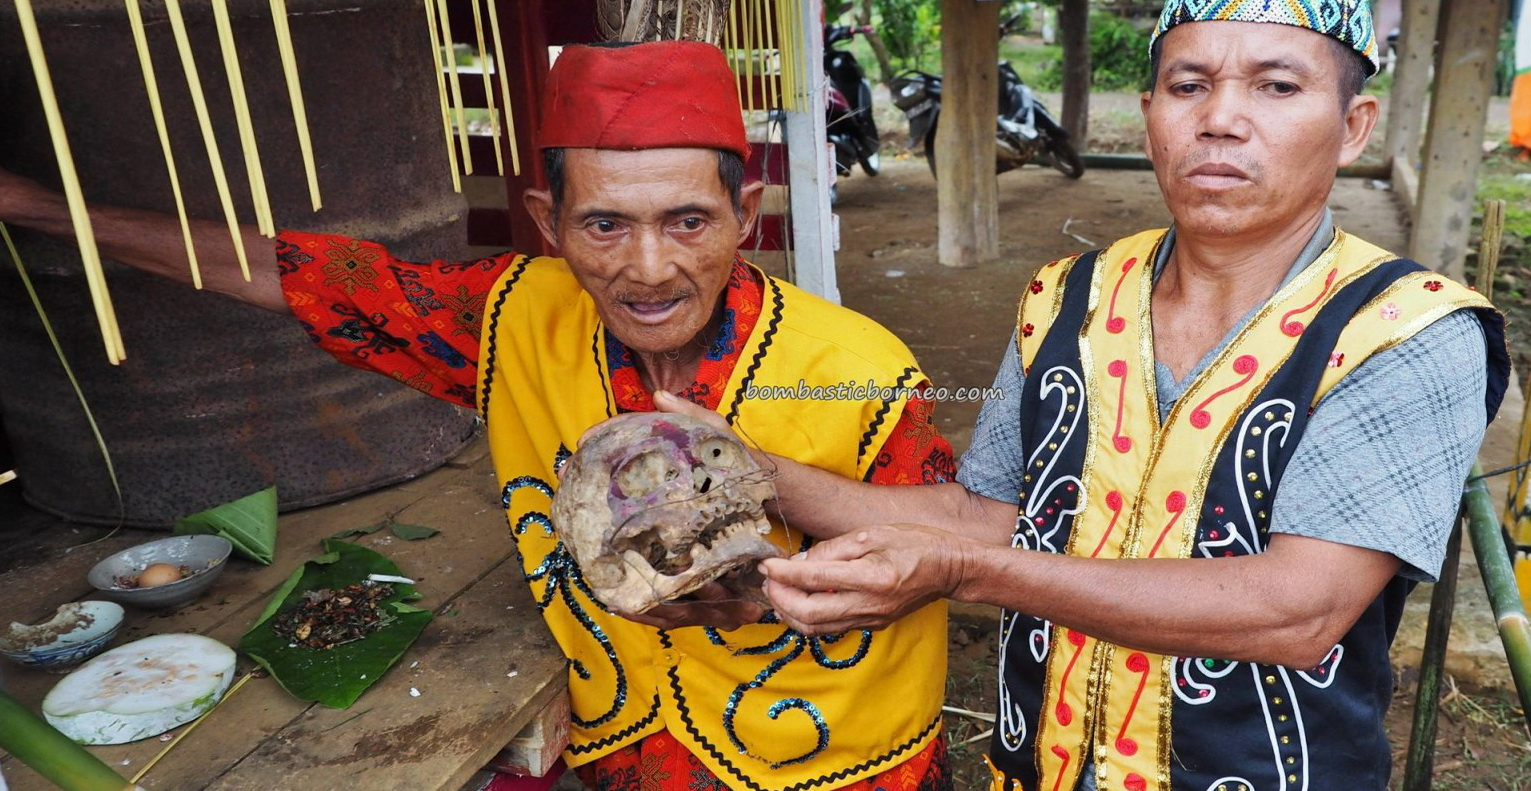 authentic village, traditional, culture, ritual, skull cleansing, feeding, Borneo, West Kalimantan, native, tribal, Tourism, tourist attraction, travel guide, transborder, 婆罗洲西加里曼丹, 原住民丰收节日